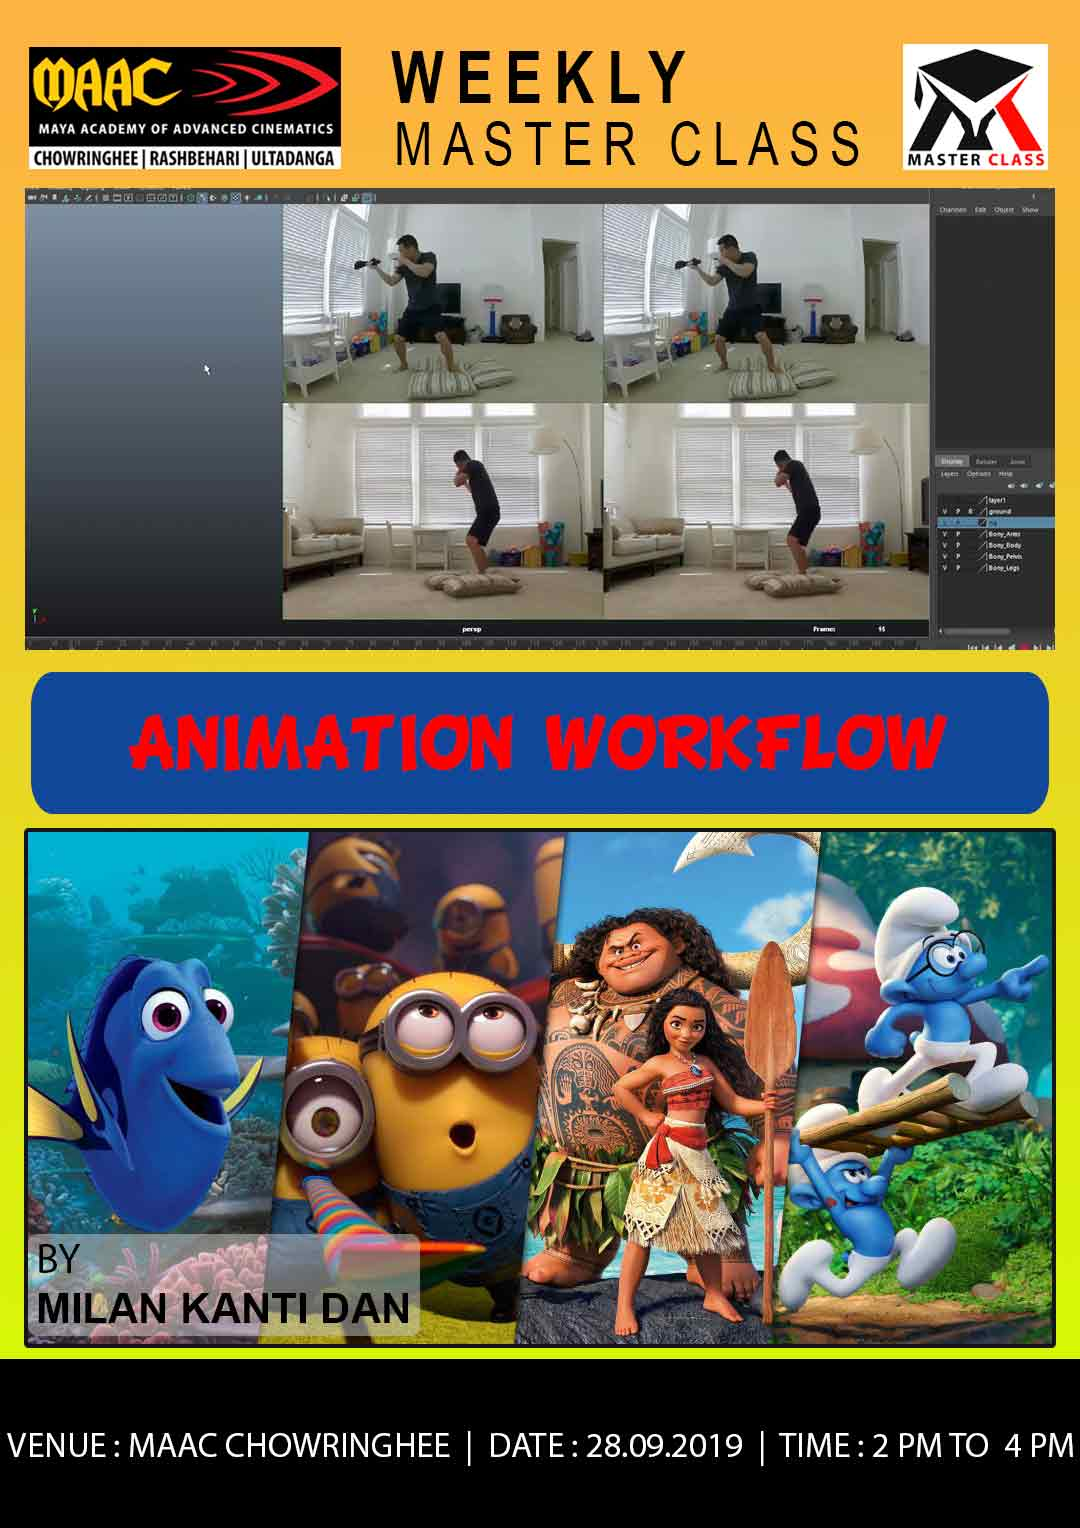 Weekly Master Class on Animation Workflow